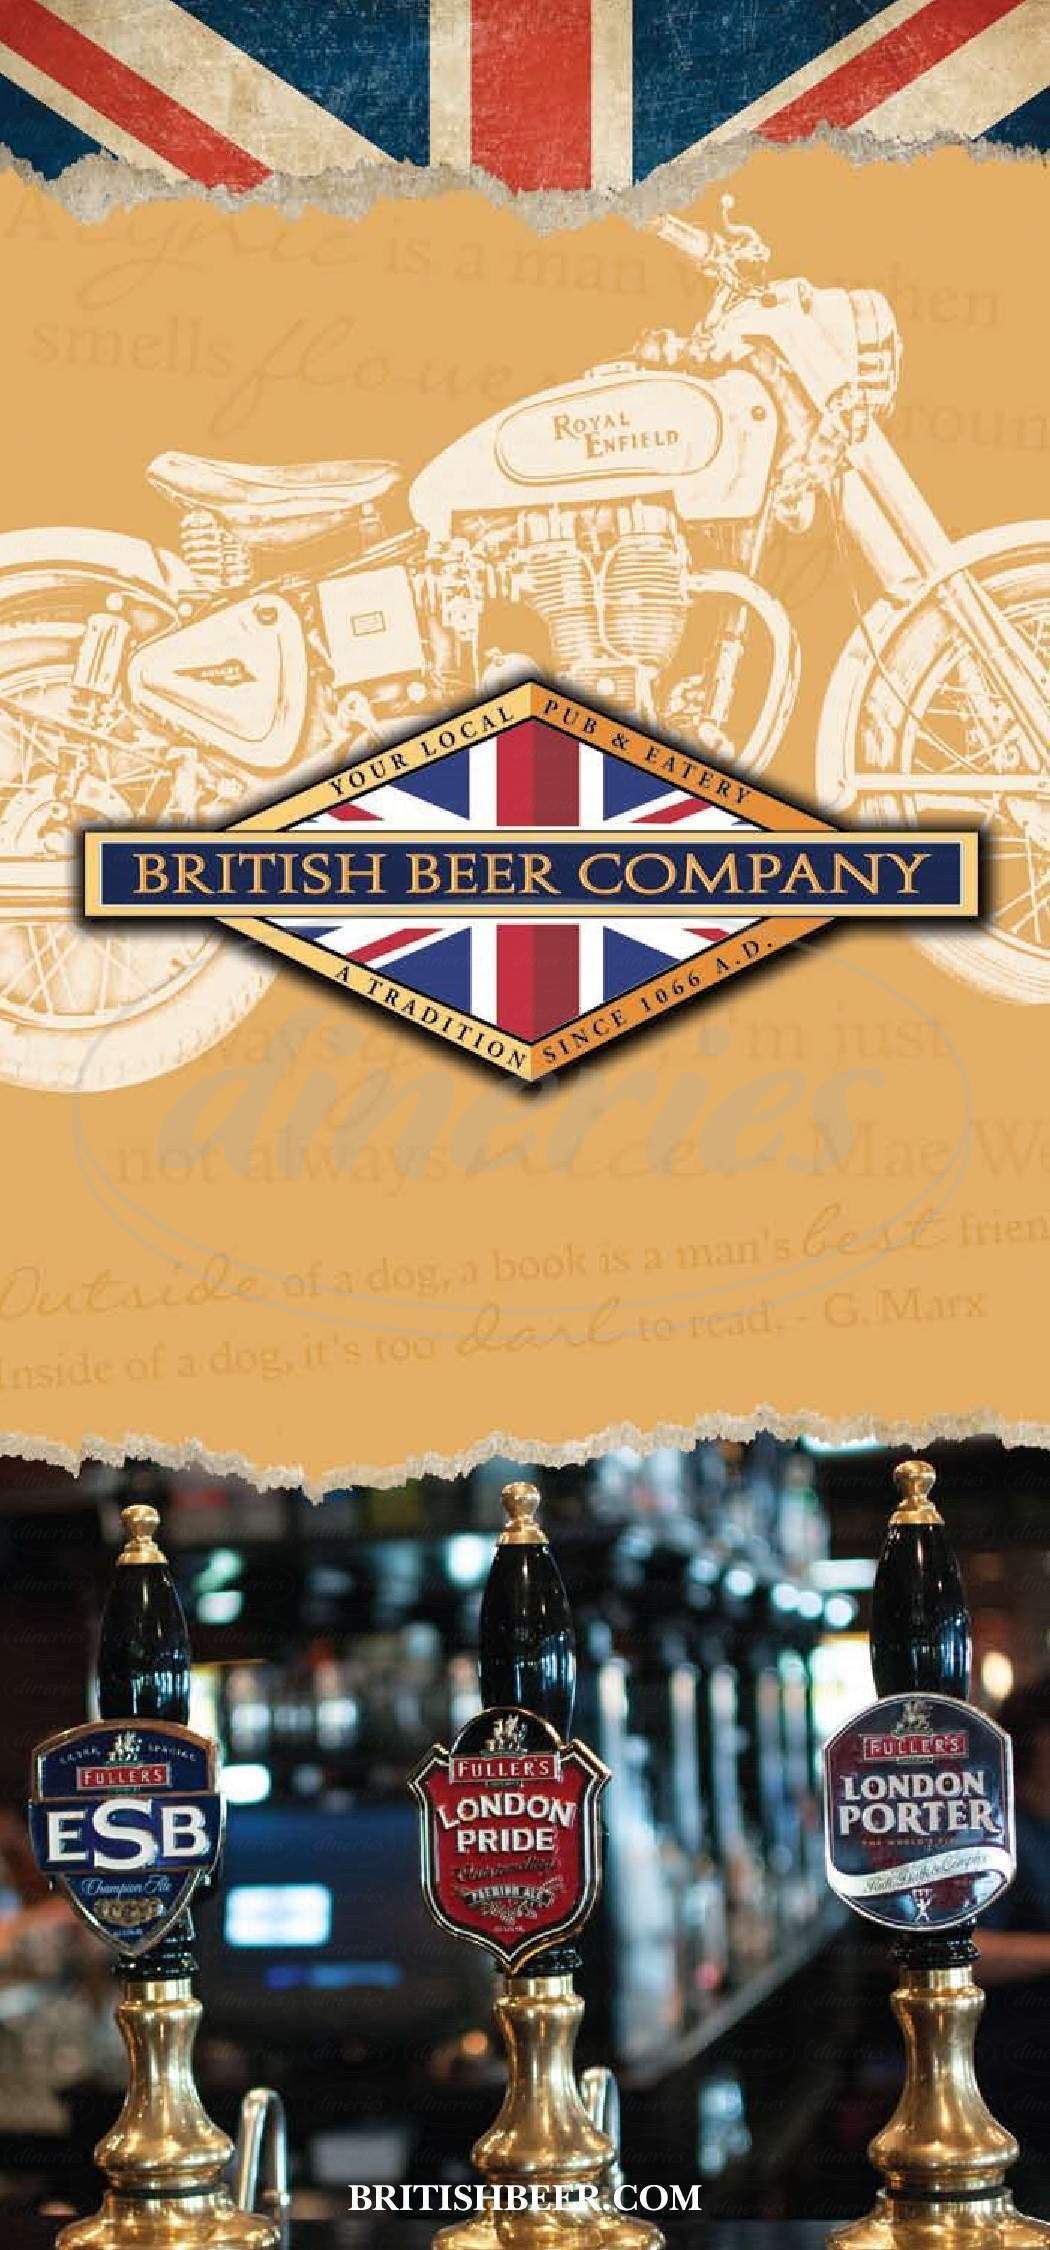 menu for British Beer Co